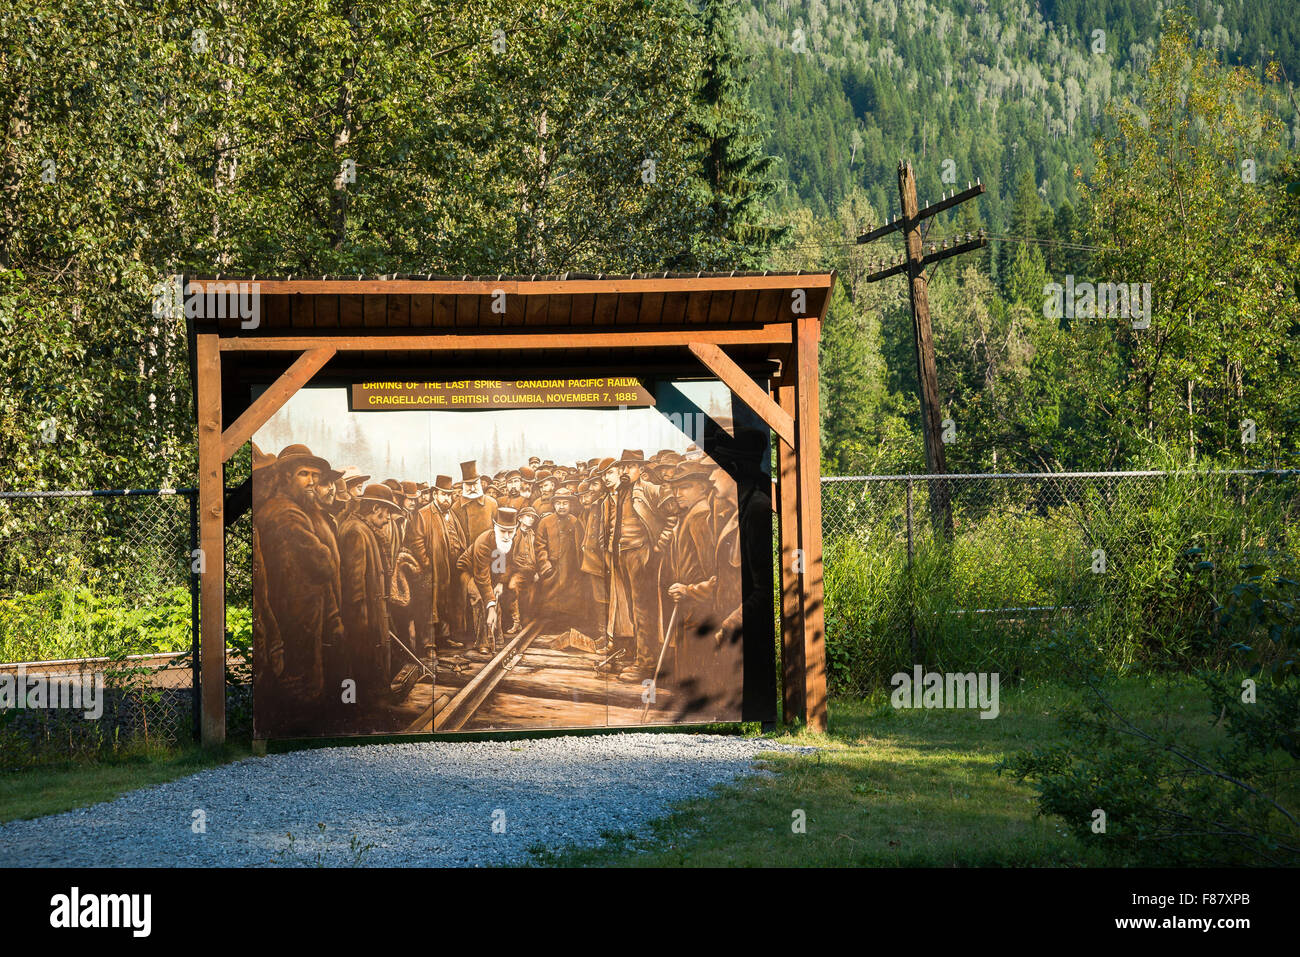 Mural depicting the driving of the last spike on the Canadian Pacific Railway, at Craigellachie, British Columbia, - Stock Image